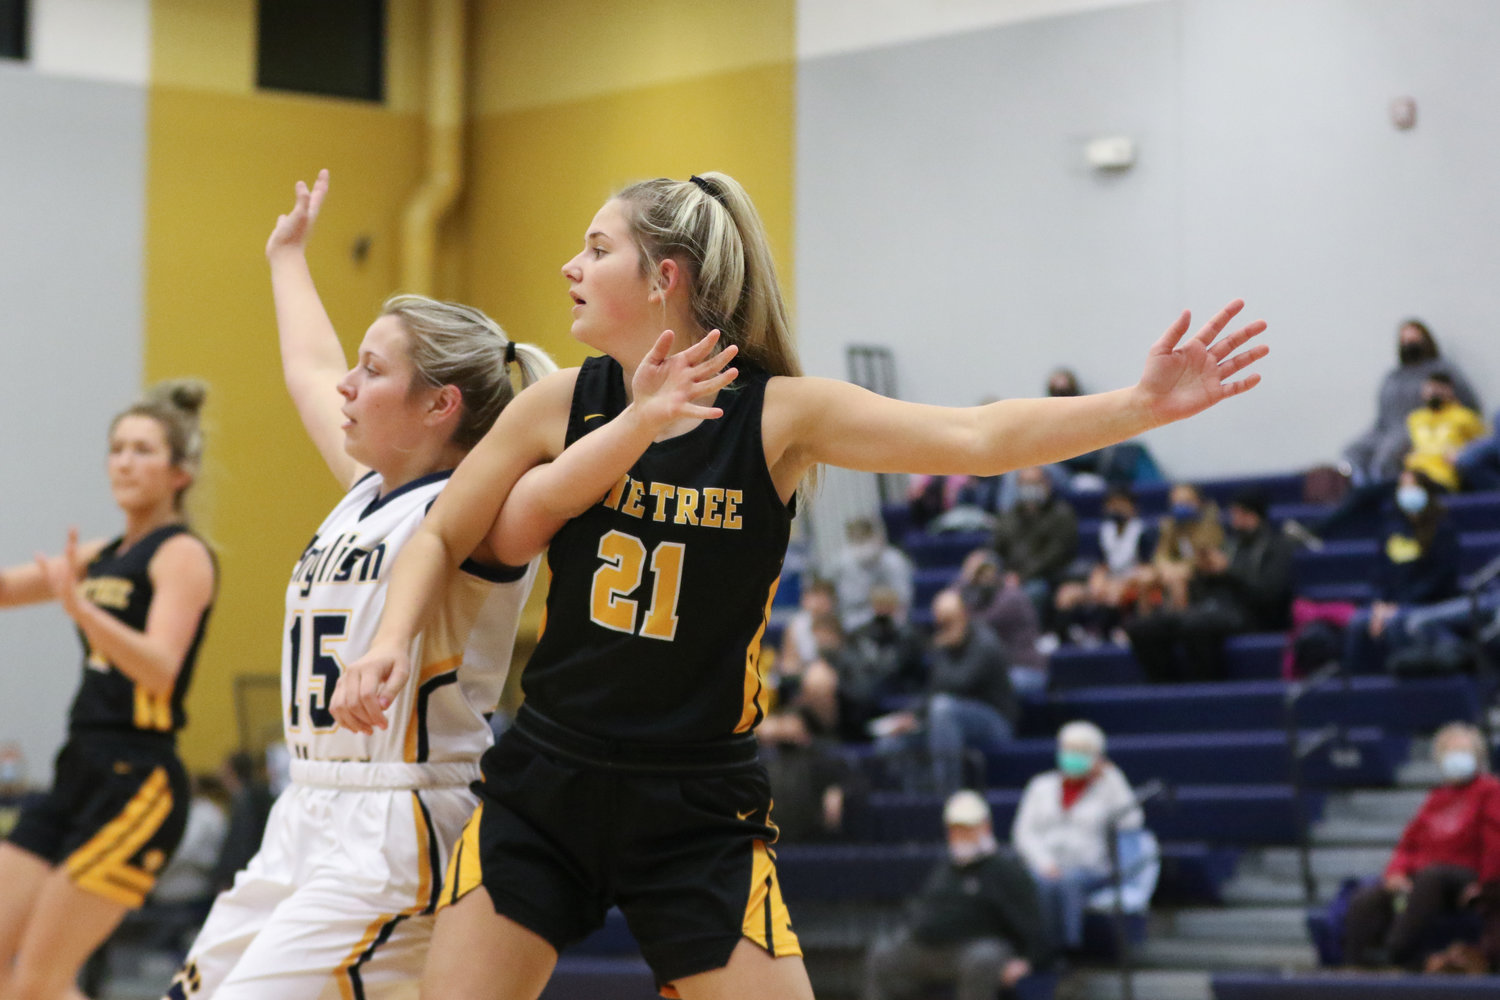 Best overall game: Kasey Chown in a 65-44 win at HLV. The Lady Lion junior grabbed a career-high 18 rebounds in the road win on February 9. She also scored 17 points, had three assists, two steals, and two blocks in Lone Tree's regular season finale.